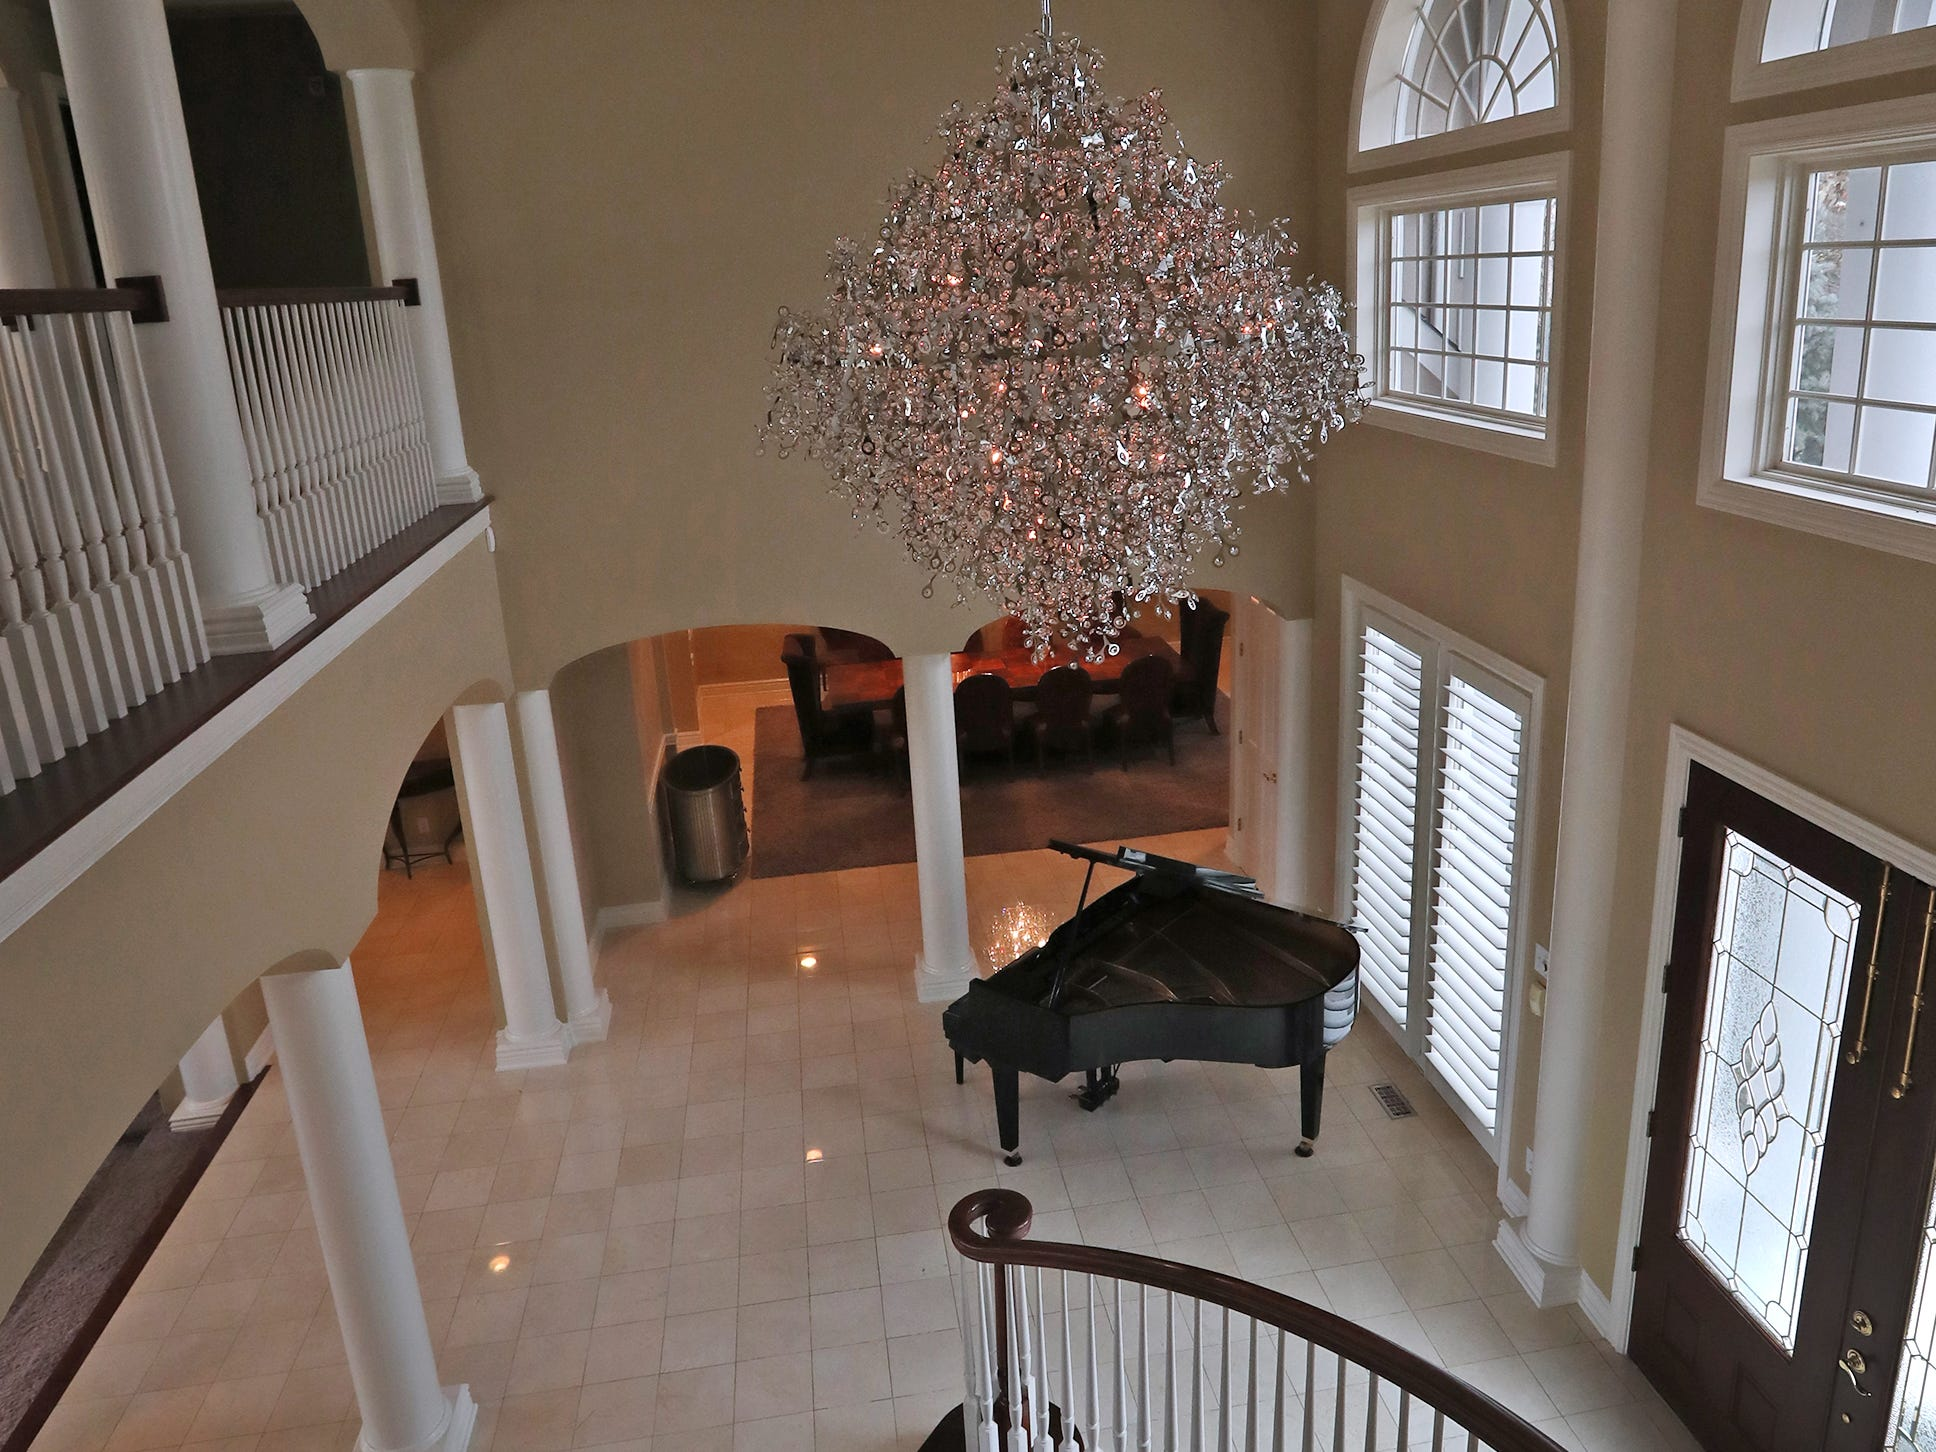 This is a look down into the two-story front foyer in the home at 1270 Laurelwood Ct. in Carmel, Friday, Dec. 28, 2018.